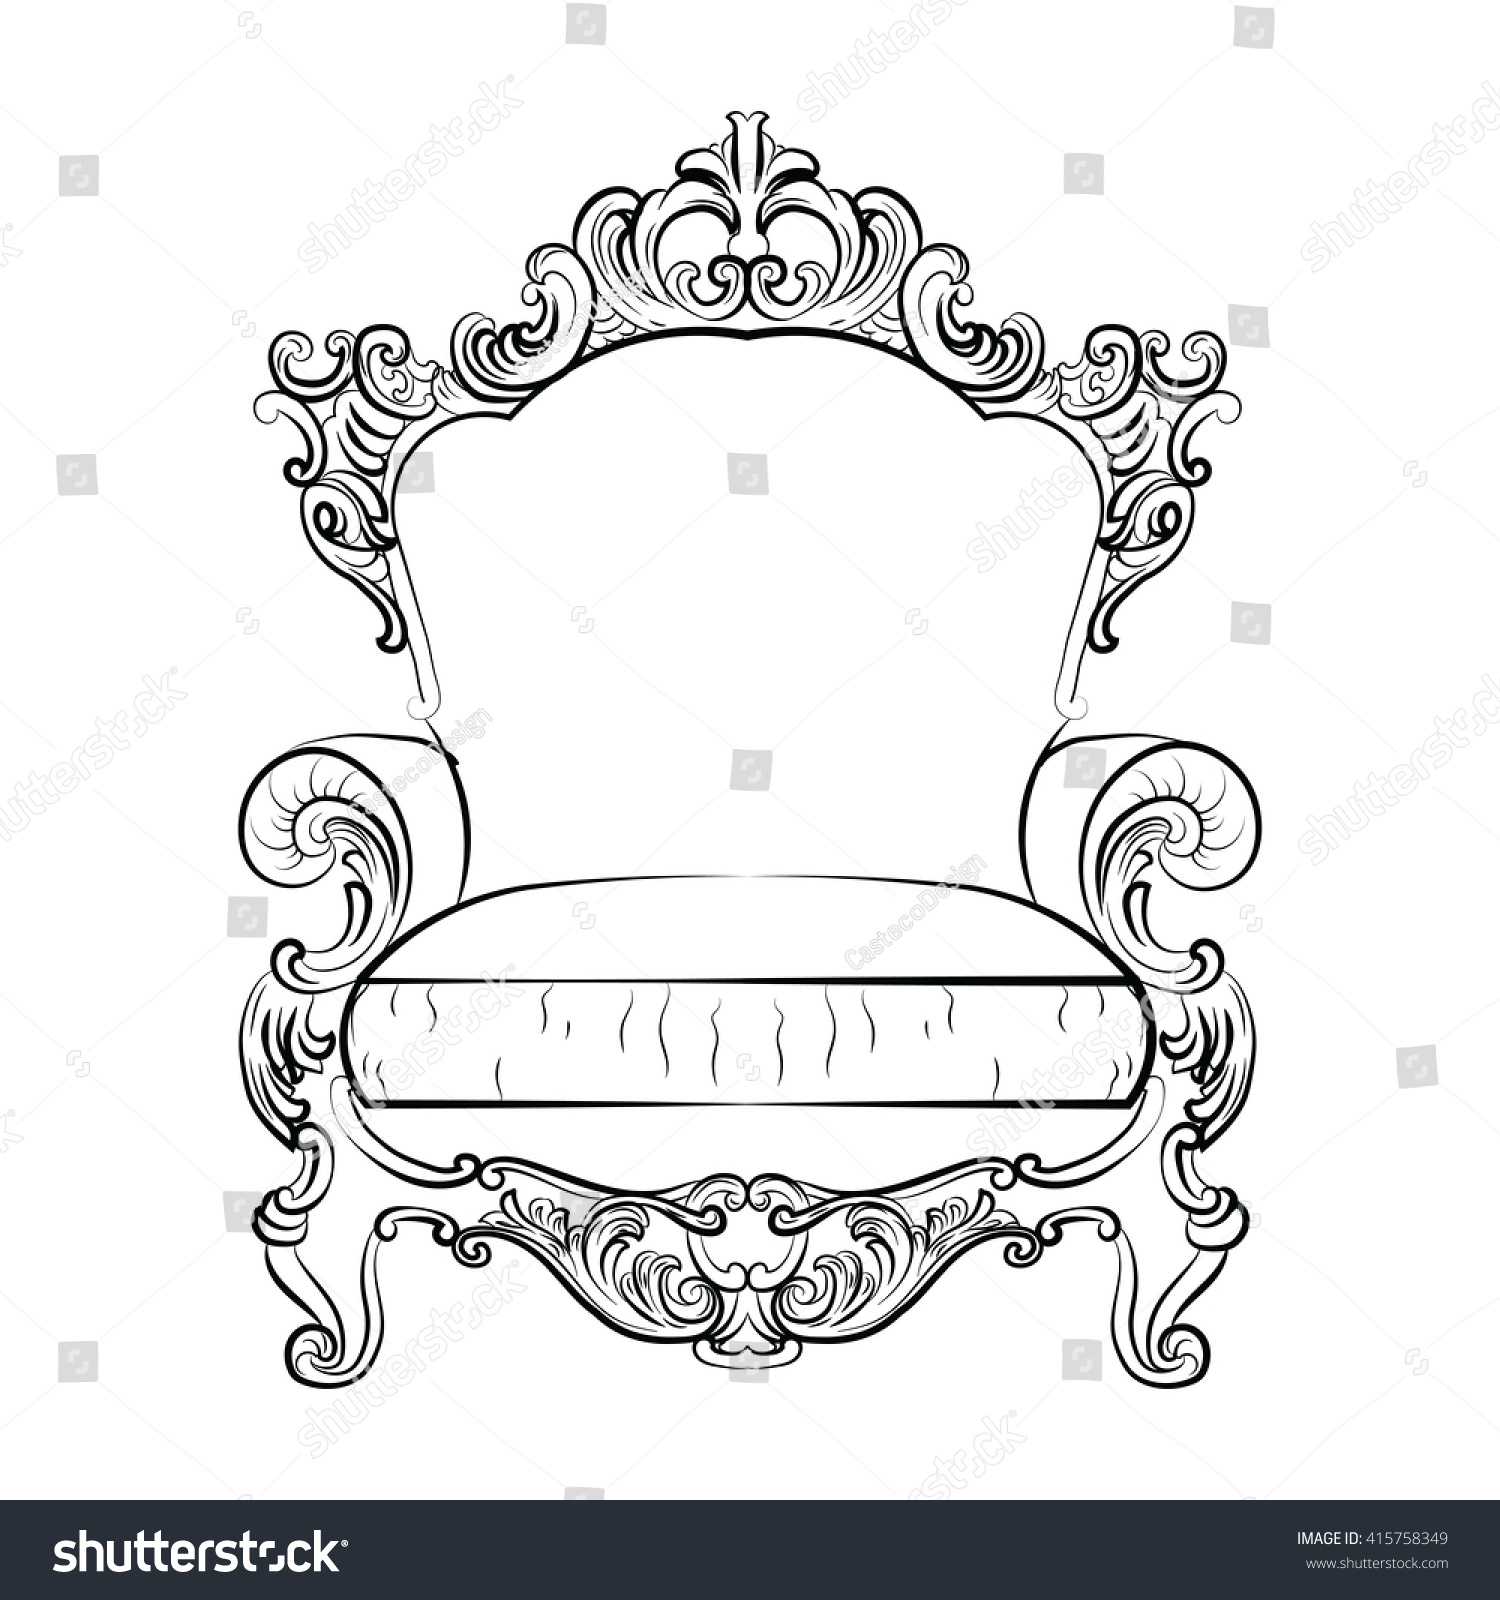 Rococo furniture sketch - Glamorous Rich Baroque Rococo Armchair Set French Luxury Rich Carved Ornaments Furniture Vector Victorian